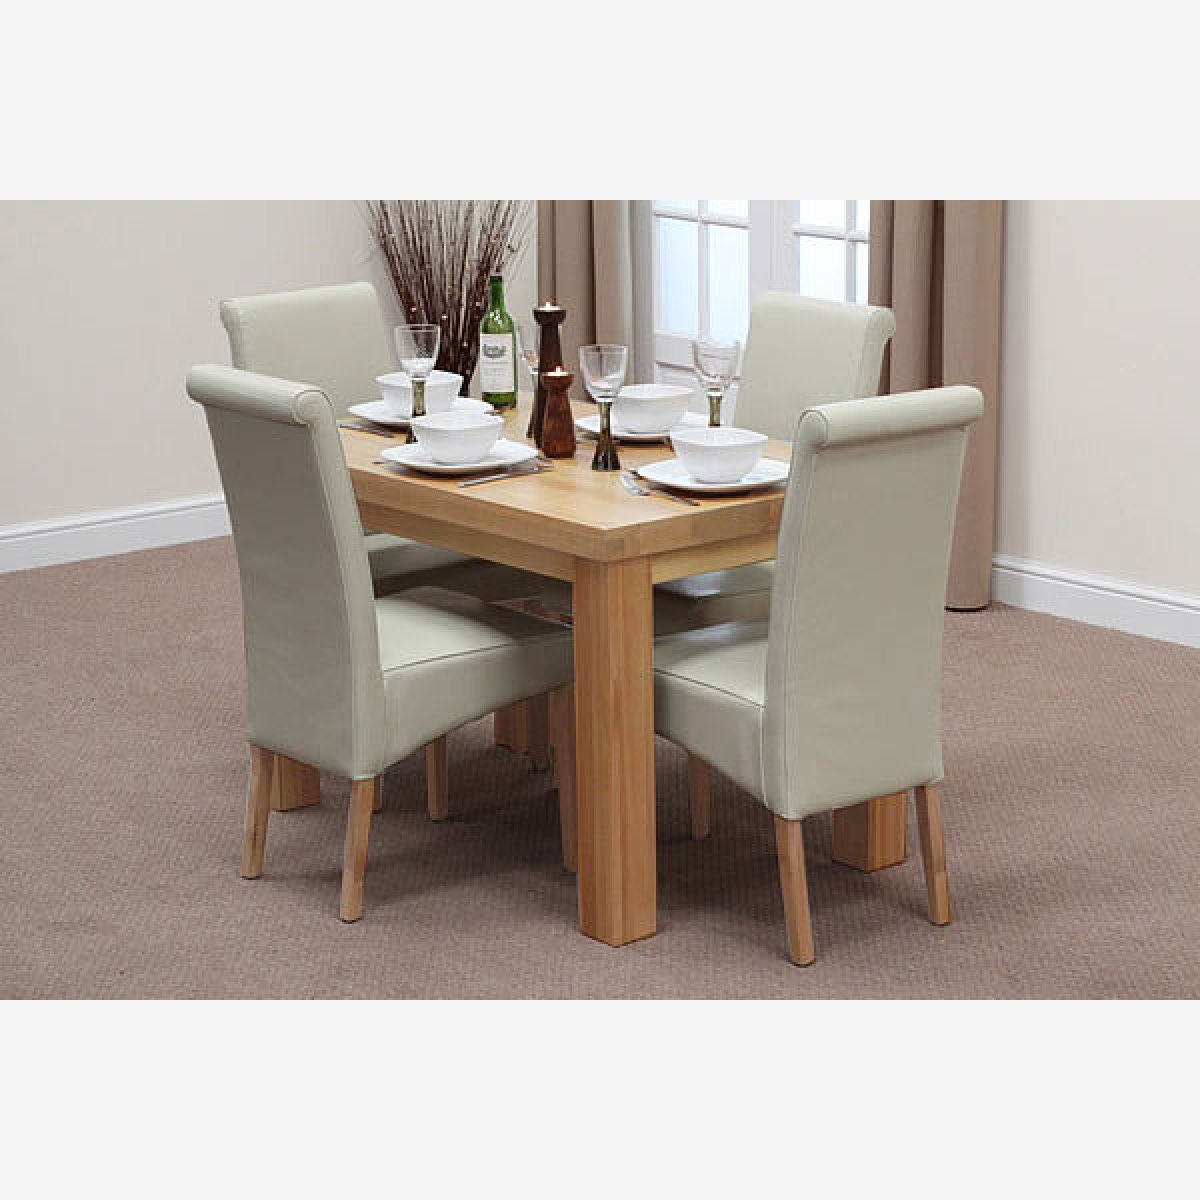 Fresco ft solid oak dining table cream leather scroll